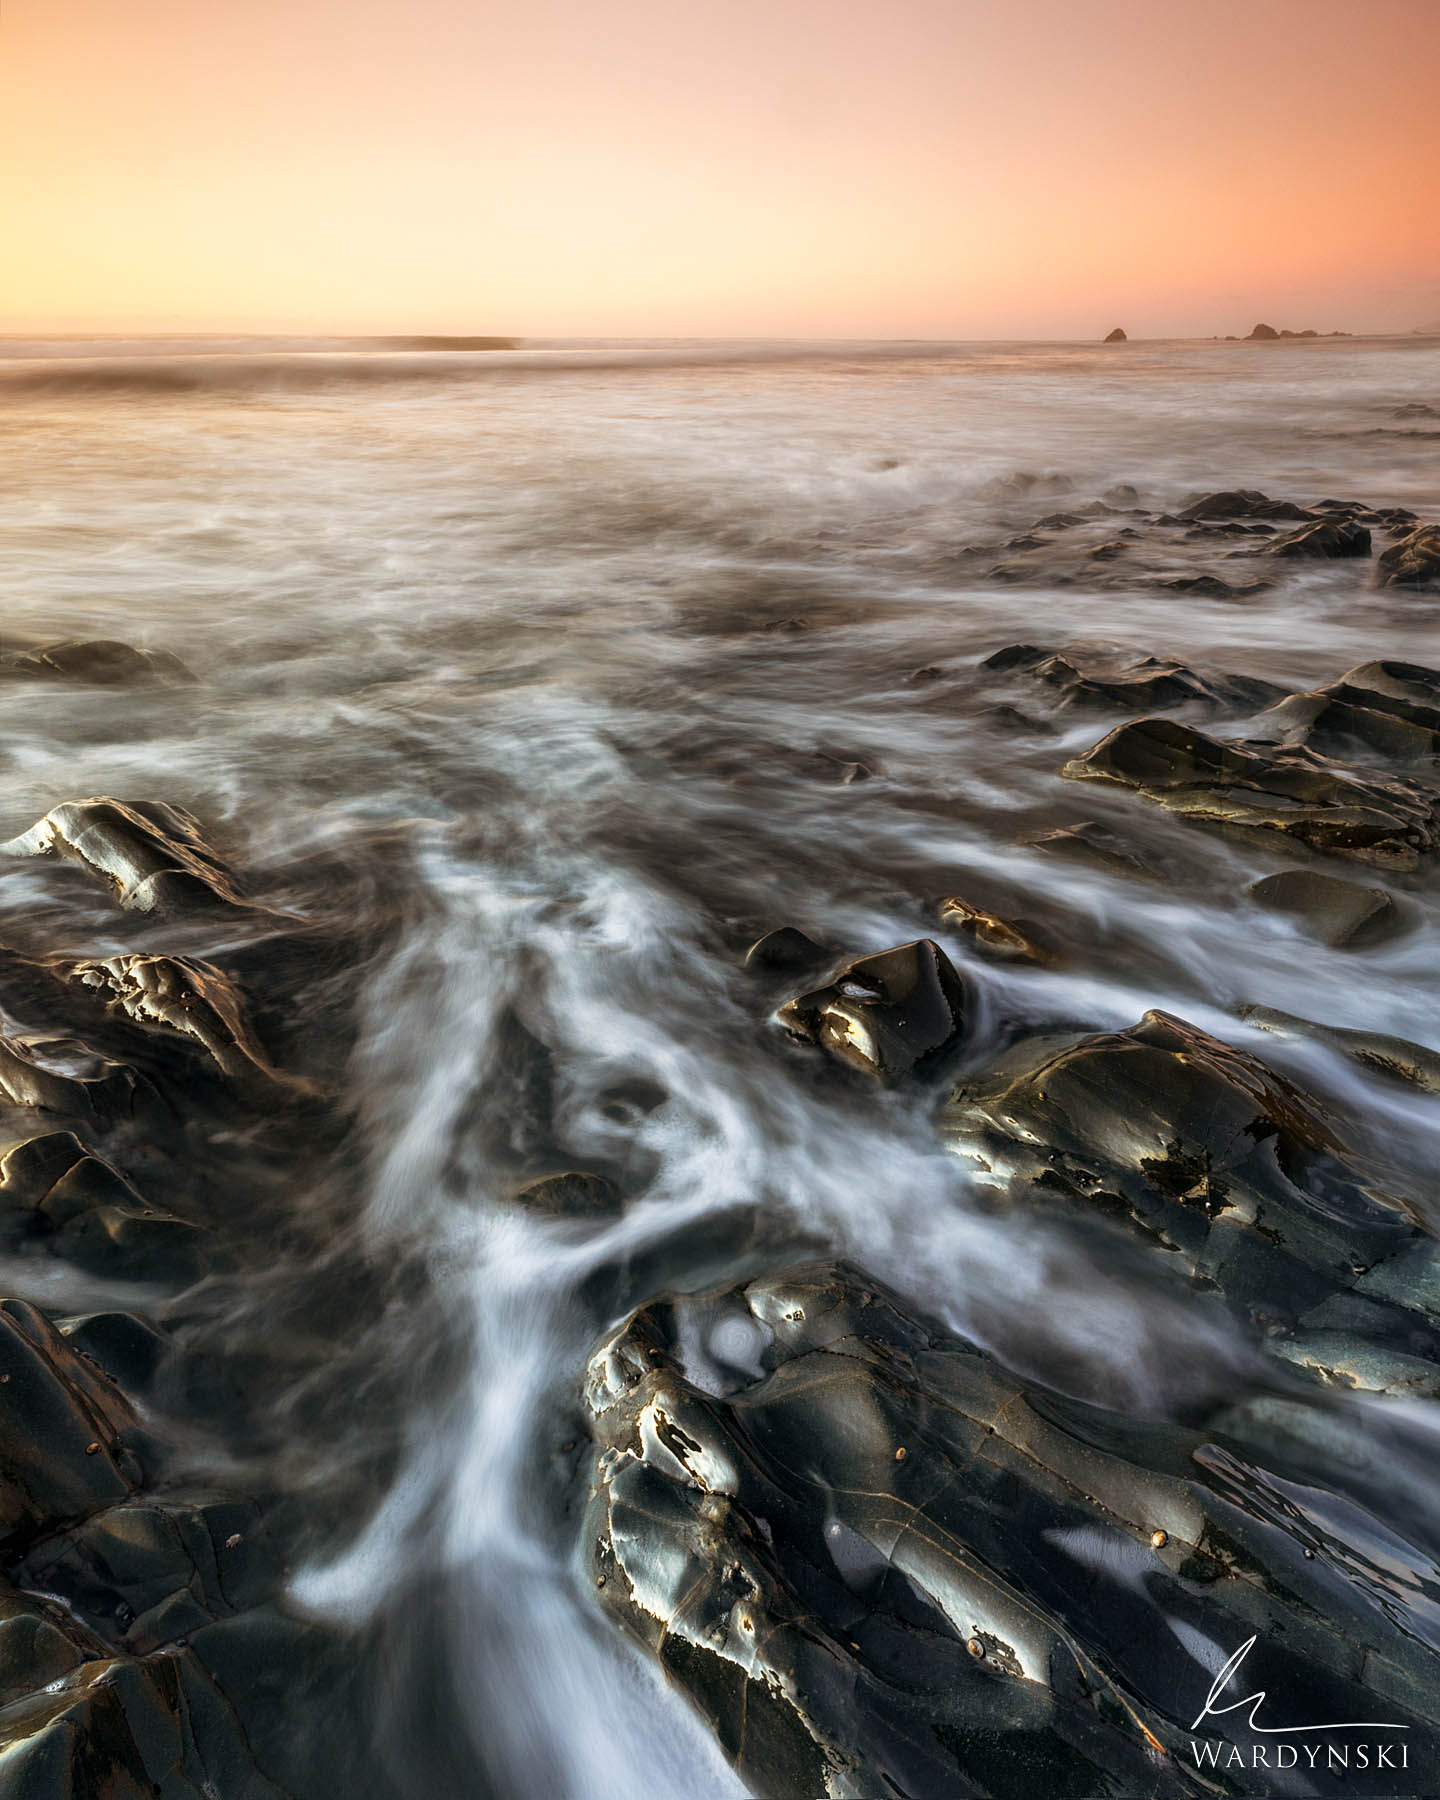 Fine Art Print | Limited Edition of 25  The surf returns back to sea on the west coast of New Zealand during sunset. Over millions...